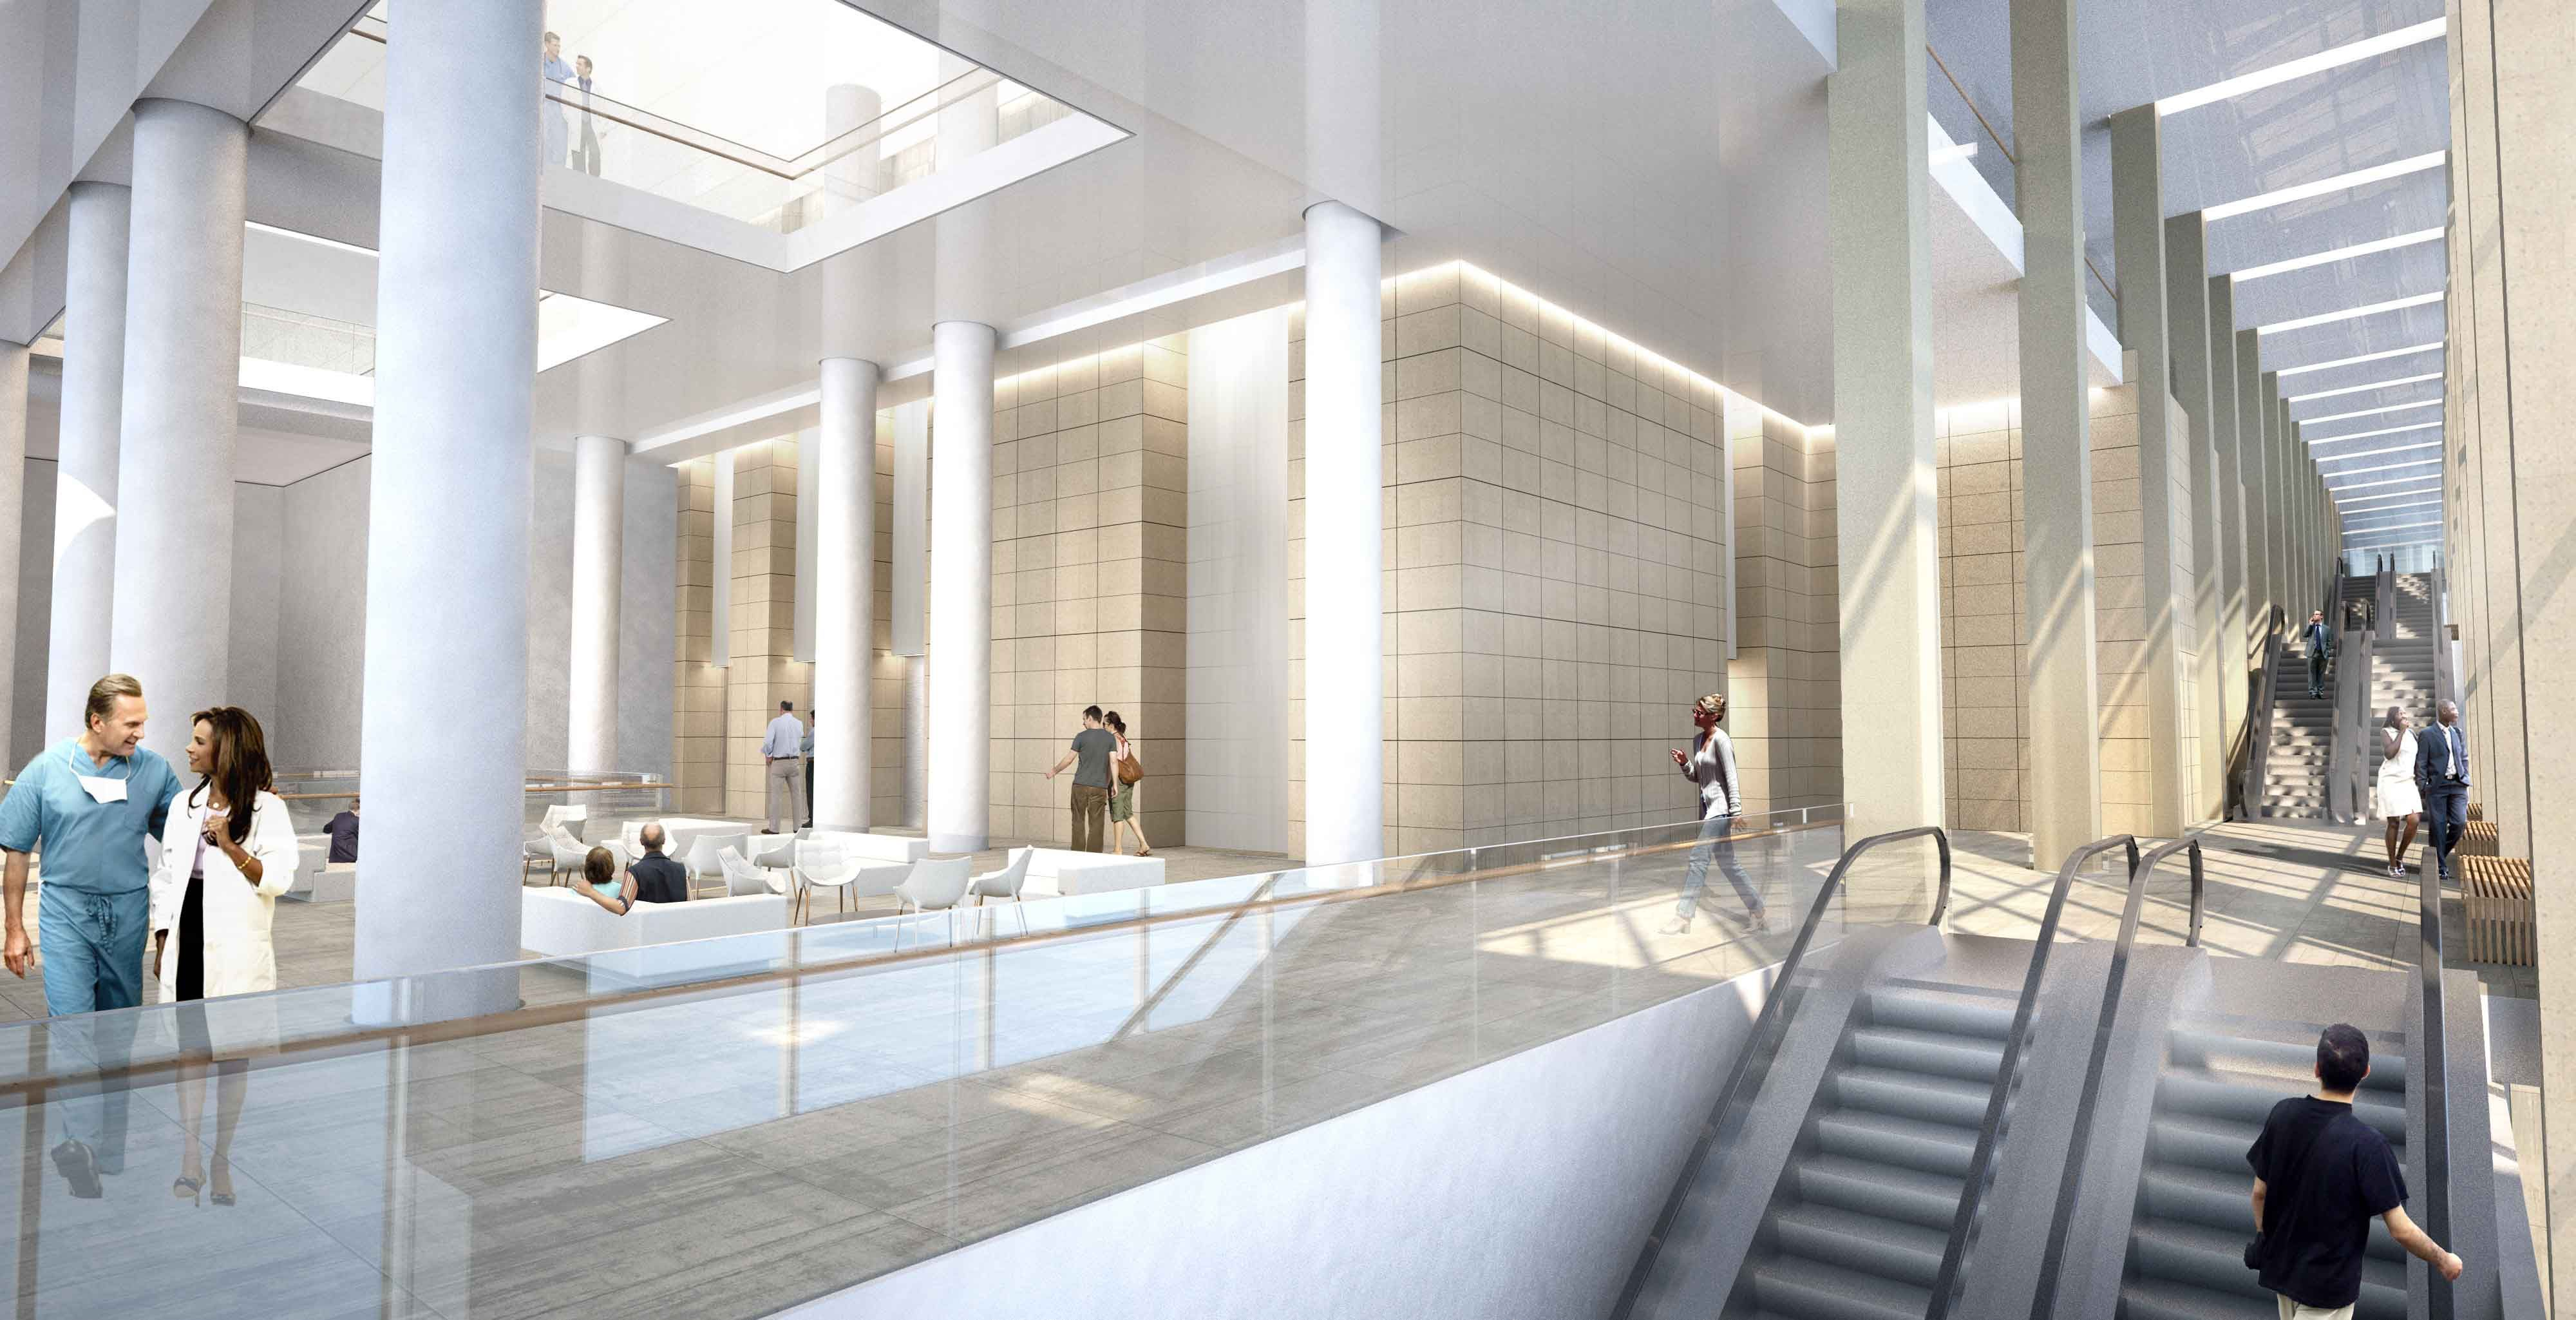 Office Foyer Meaning : Unveiled gt som s hilltop hospital in cincinnati brings